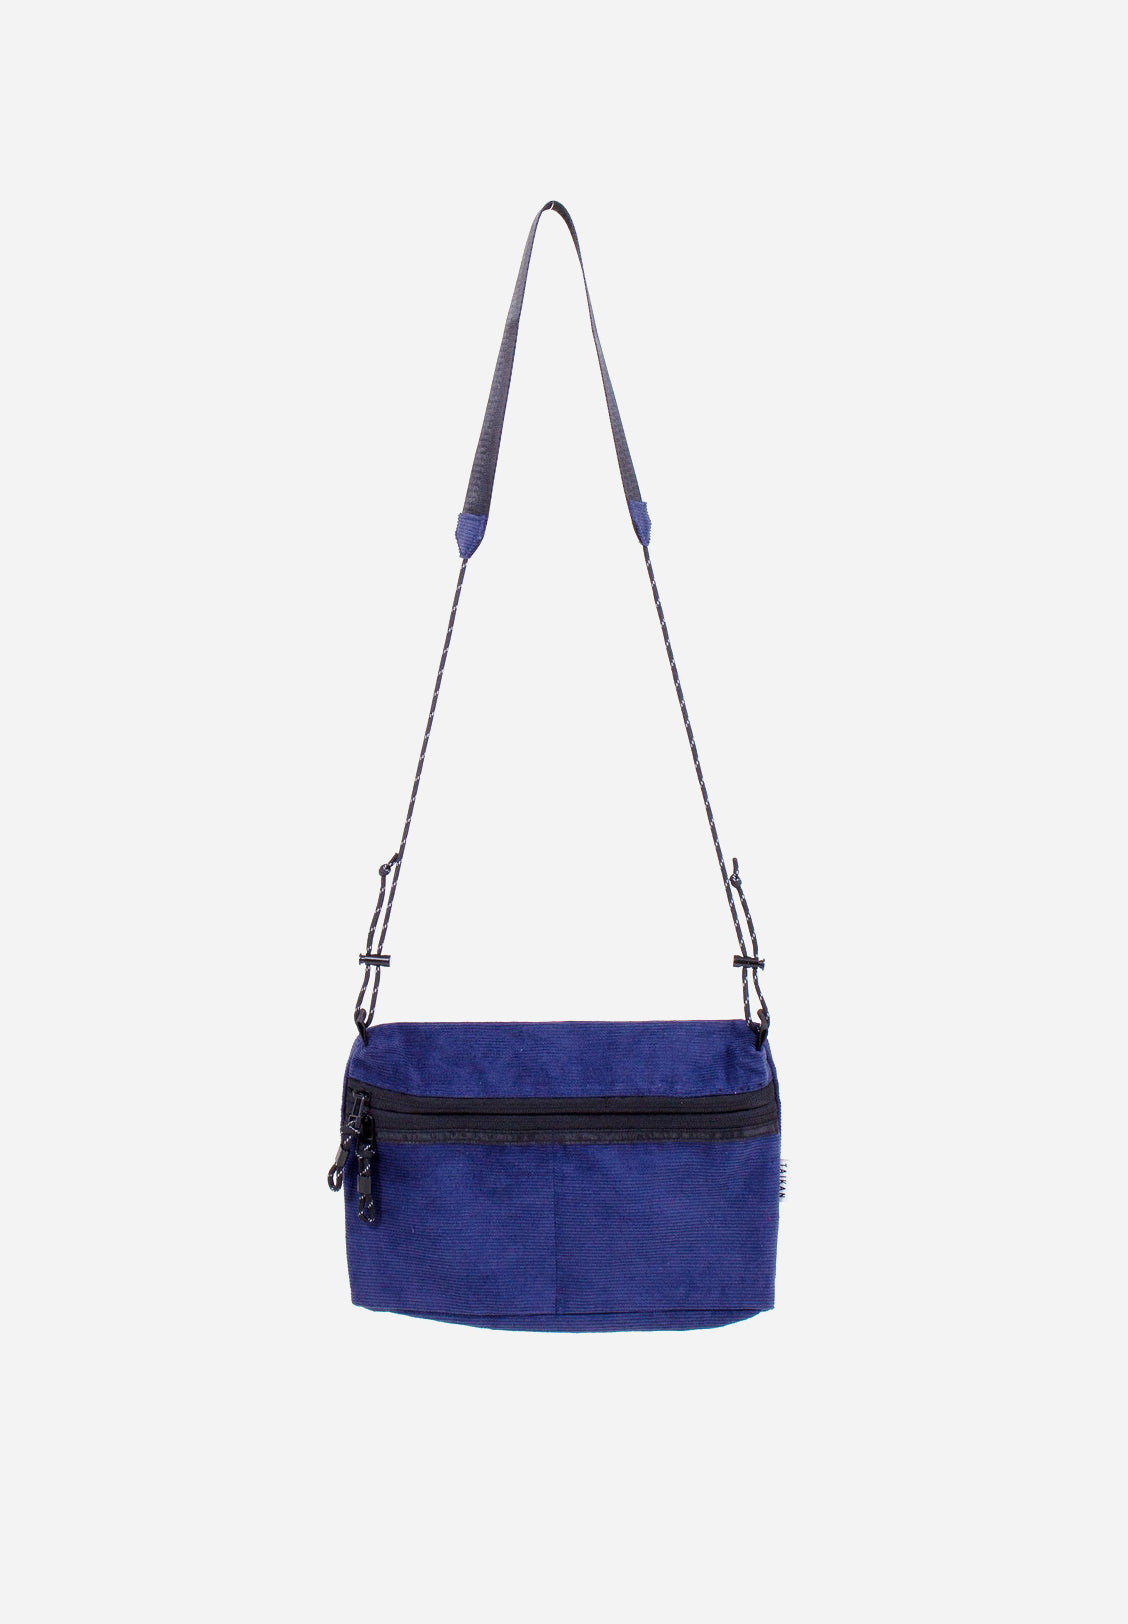 SACOCHE BAG SMALL, NAVY